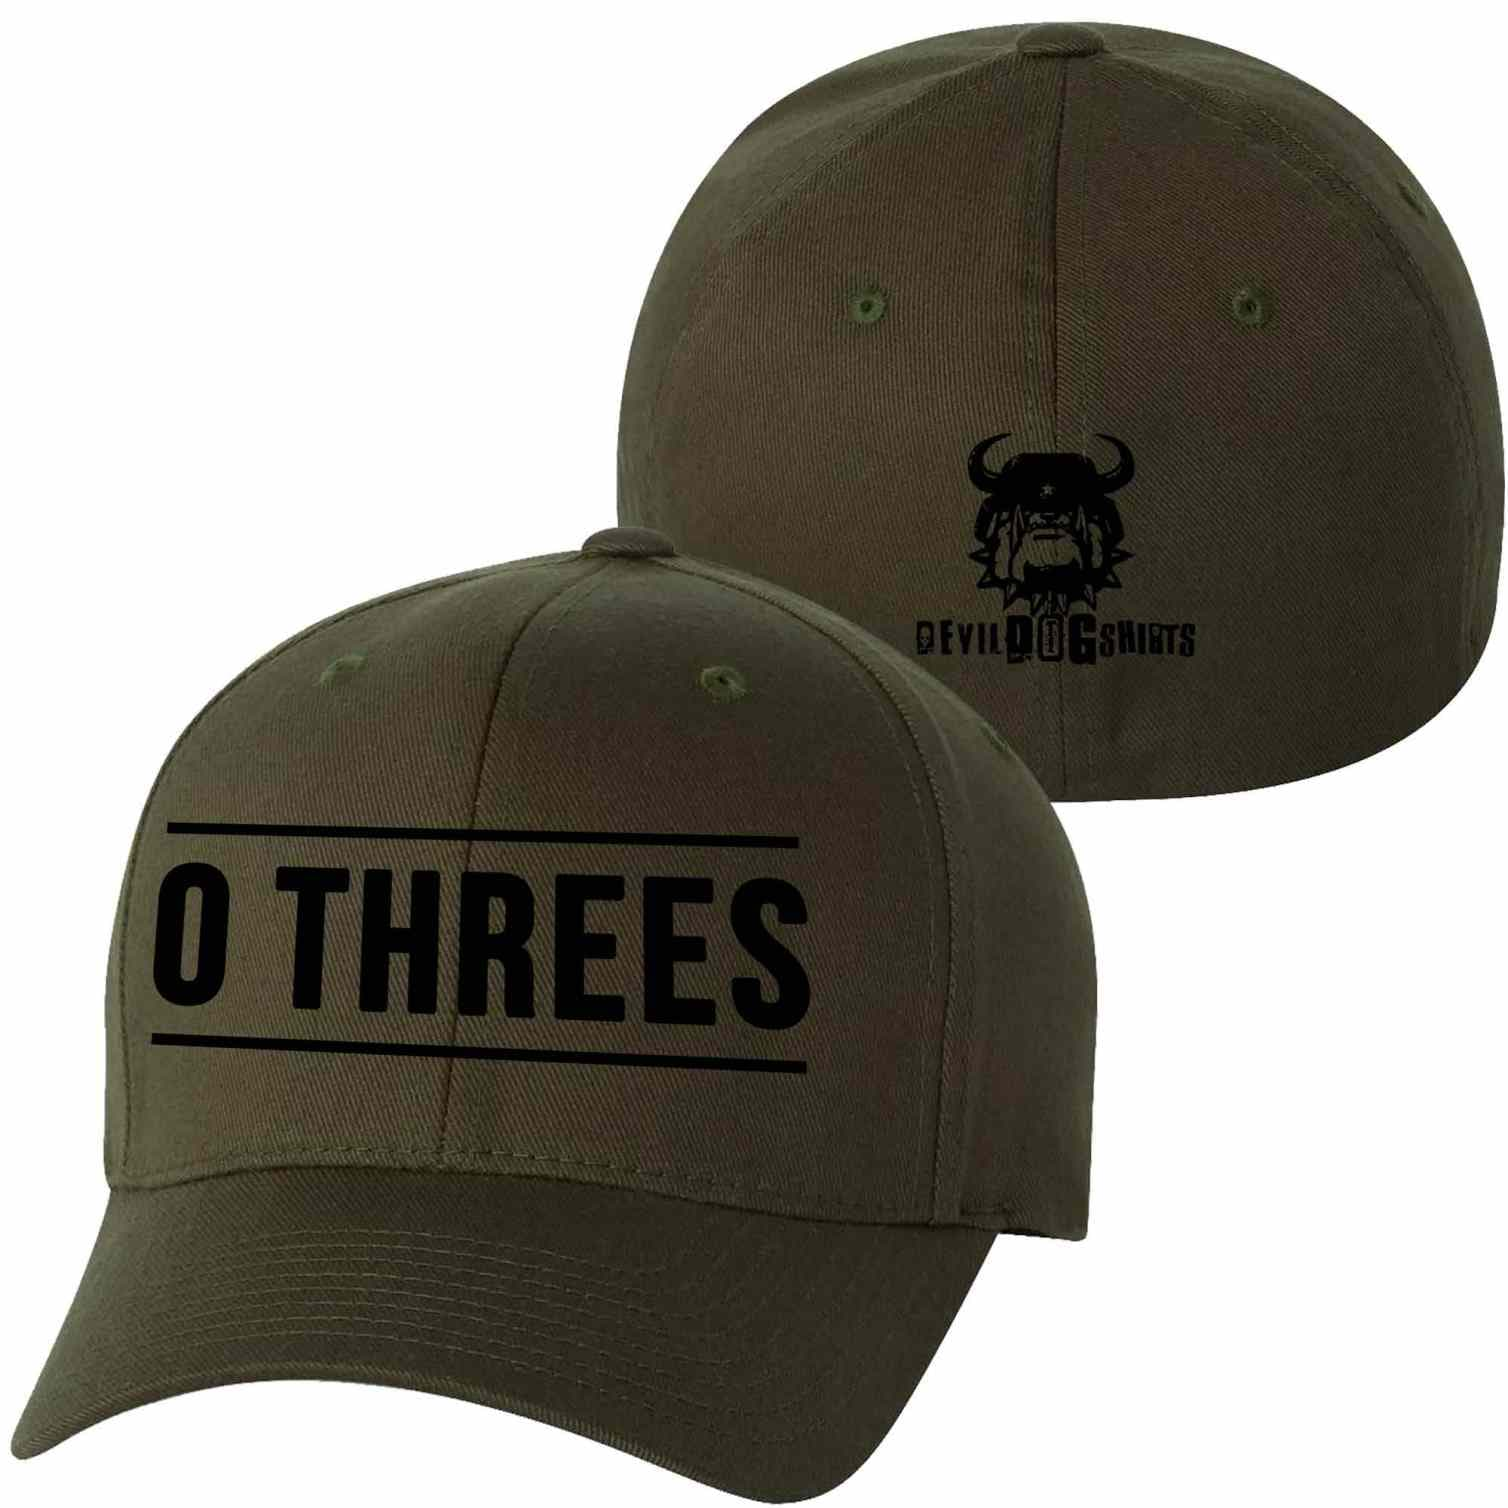 Black, Coyote, and Olive Drab USMC MOS Ball Caps